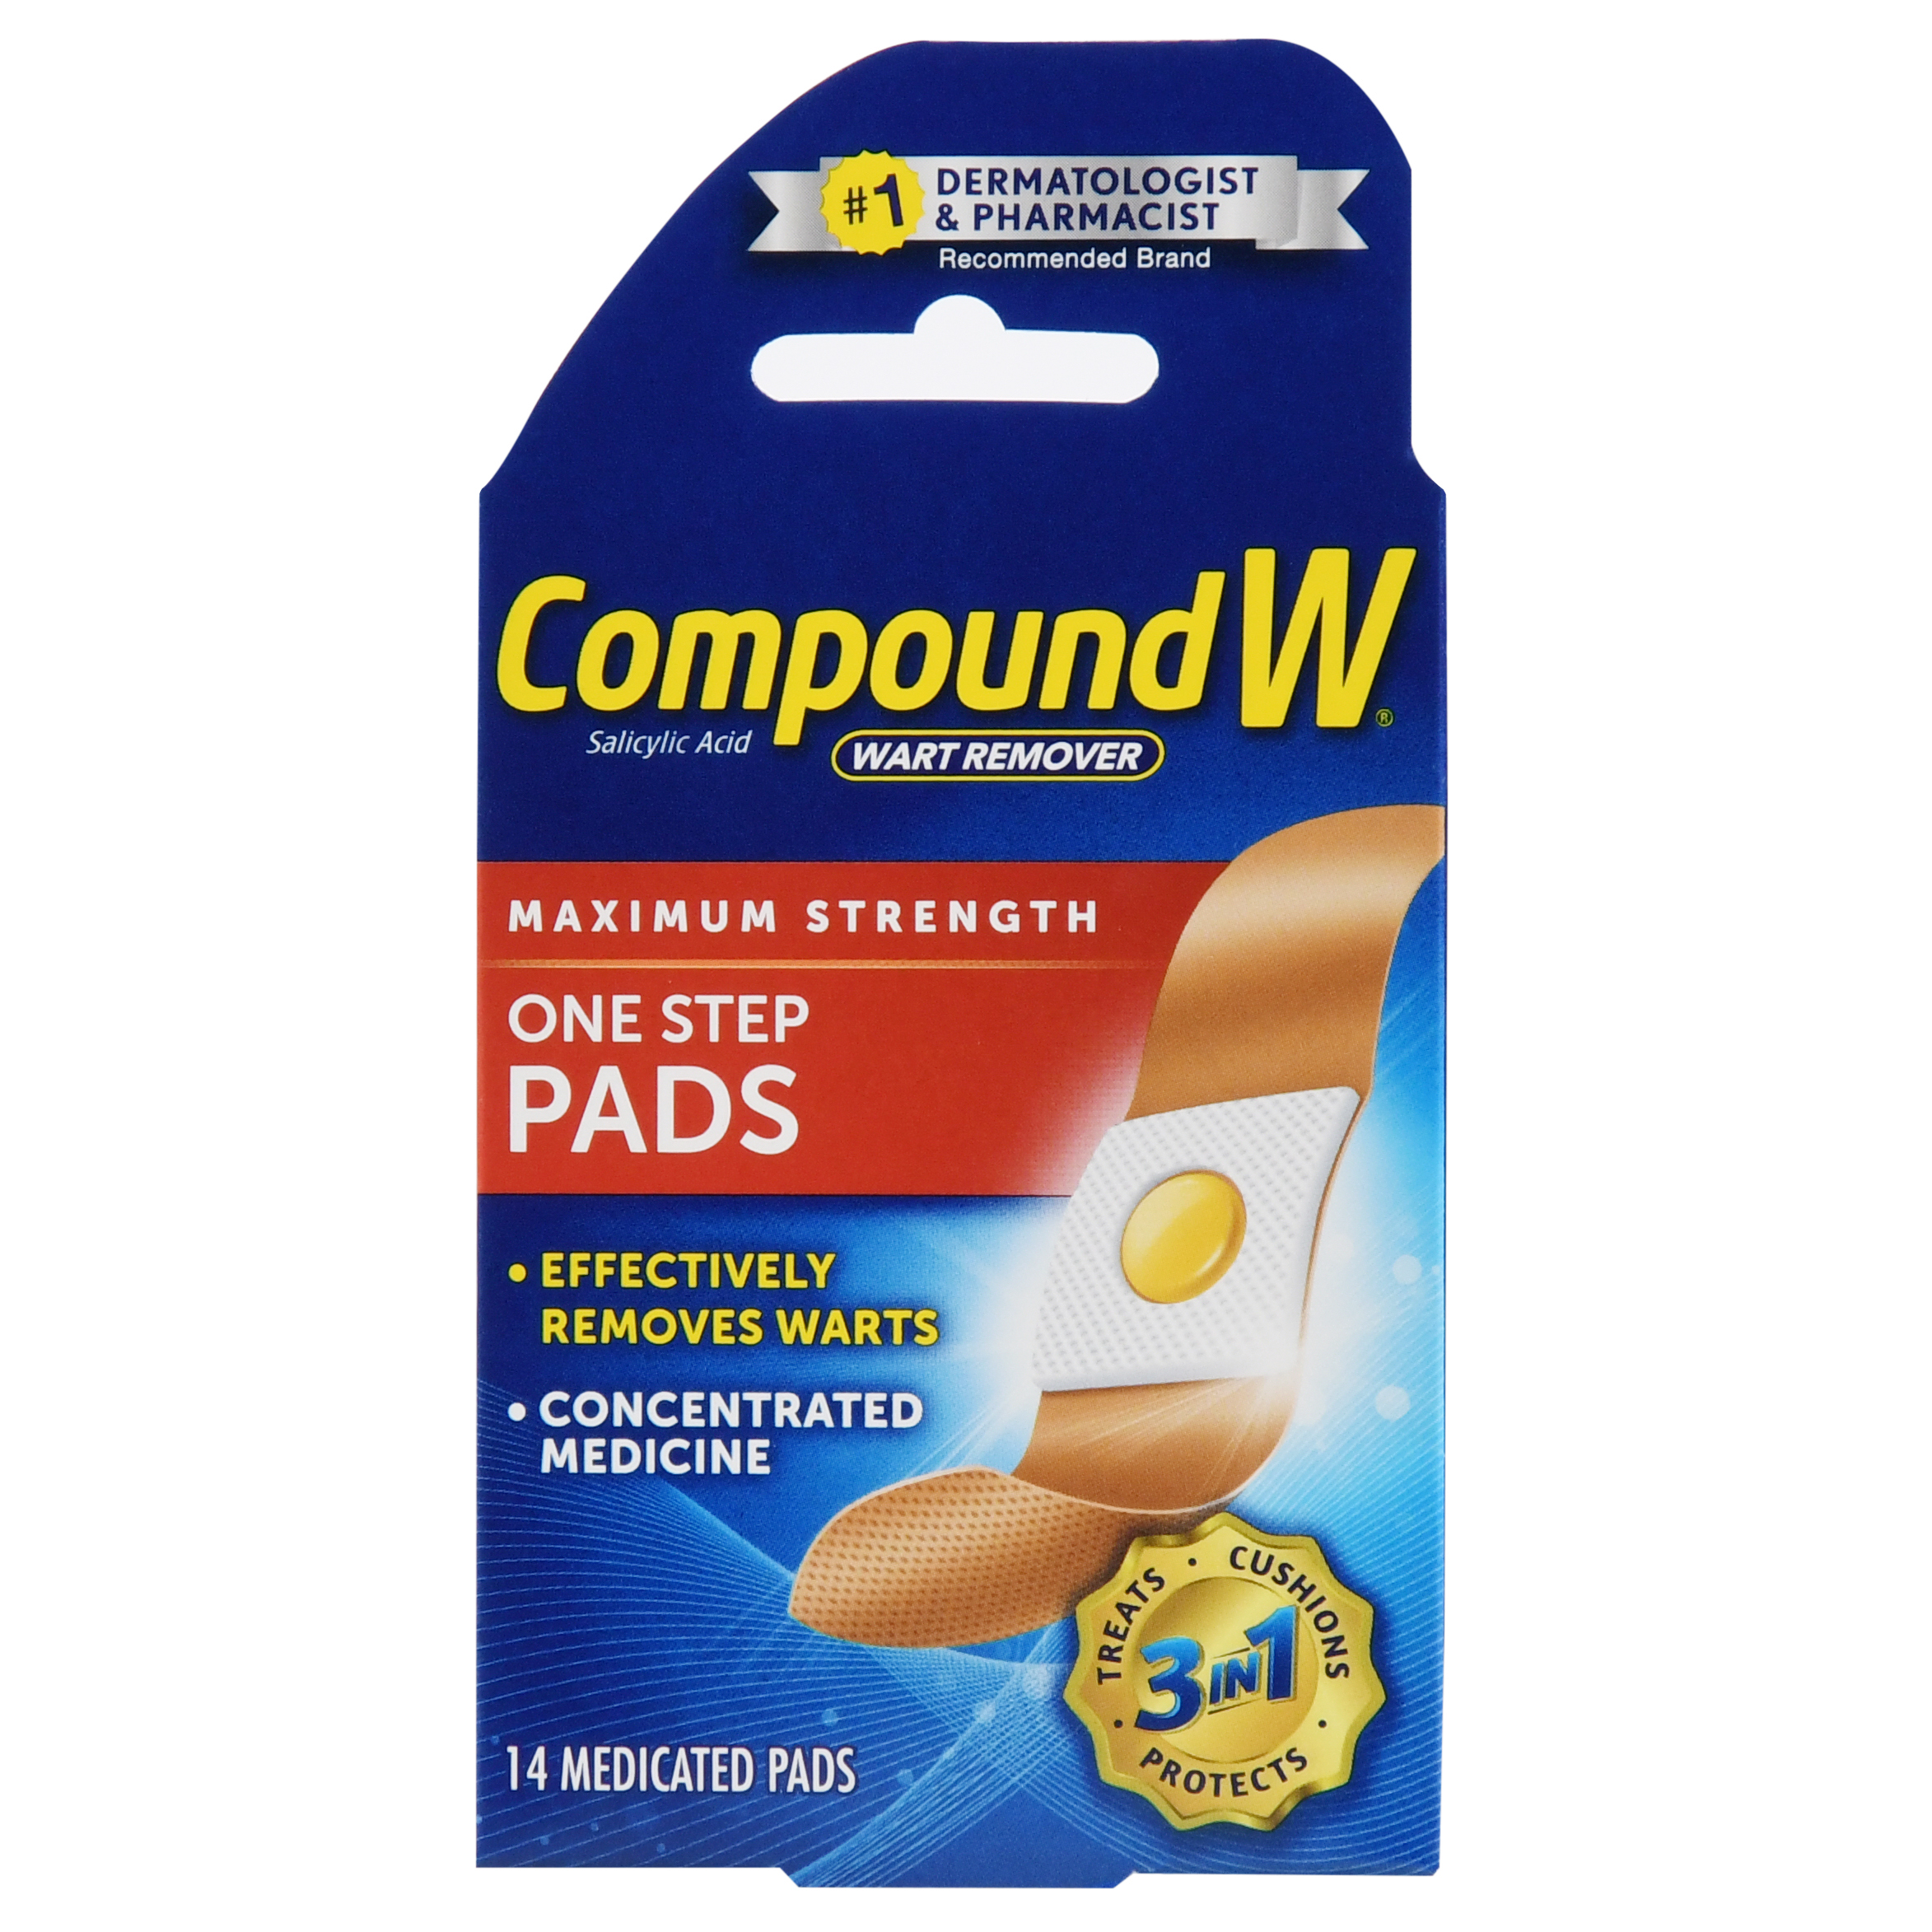 Compound W Wart Remover One Step Pads Maximum Strength - 14 CT